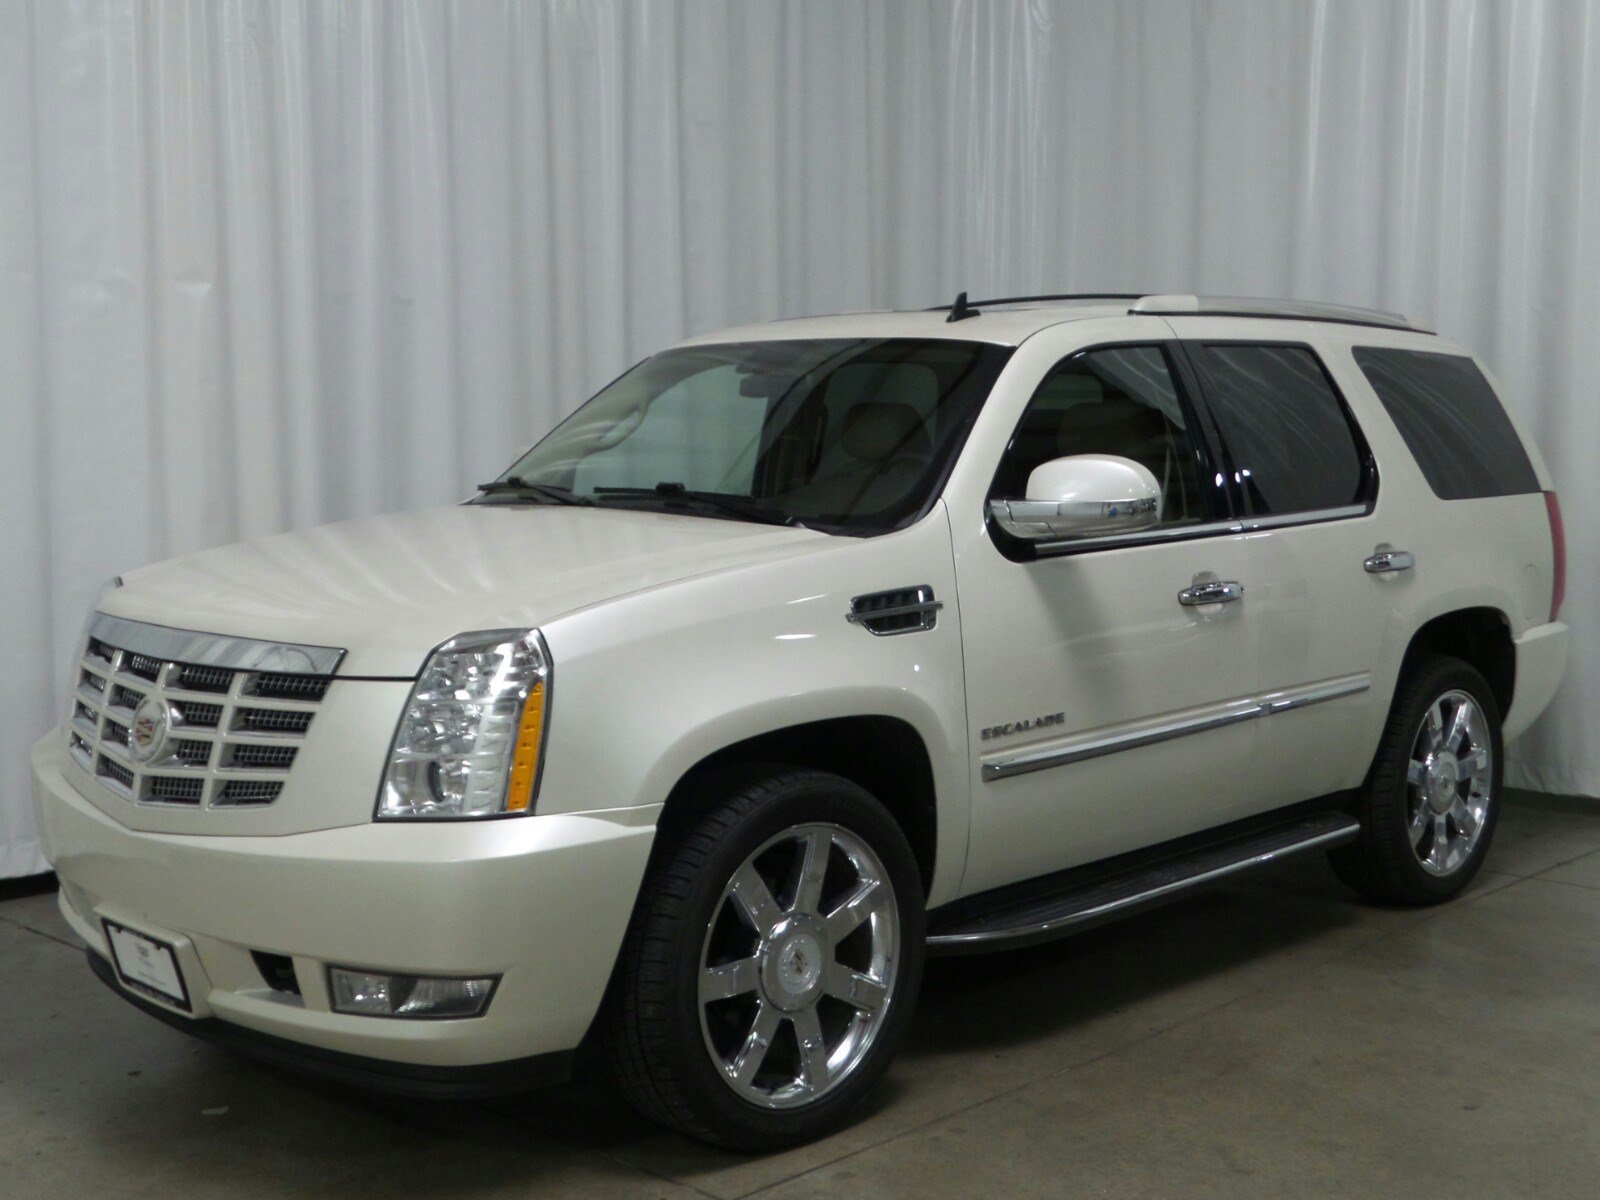 Pre-Owned 2010 Cadillac Escalade Luxury SUV in Fremont ...